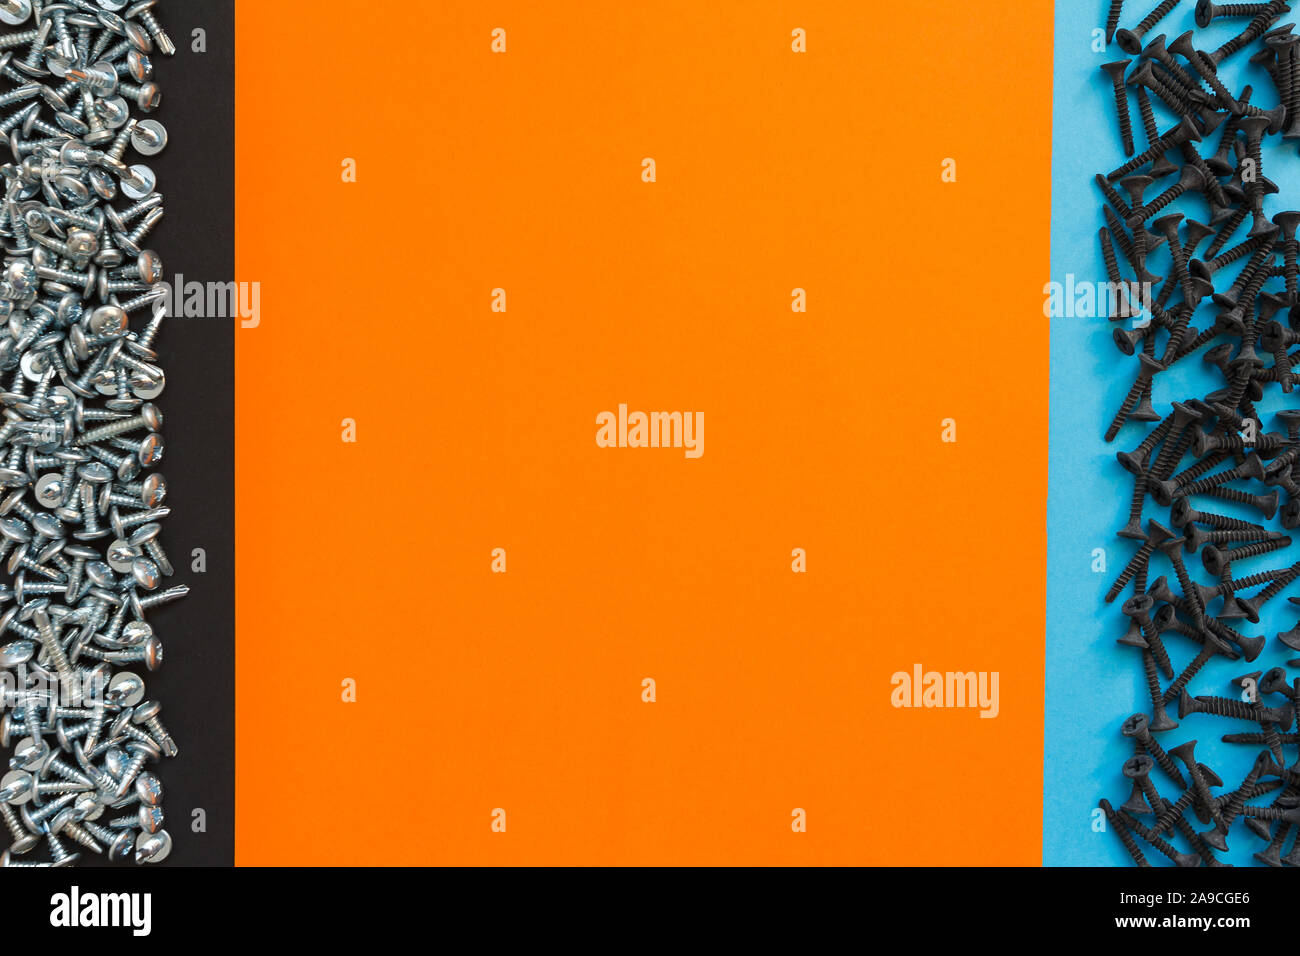 Flat Lay Composition With Different Screws on Black, Orange and Blue Background. Top View of Checklist Concept Stock Photo